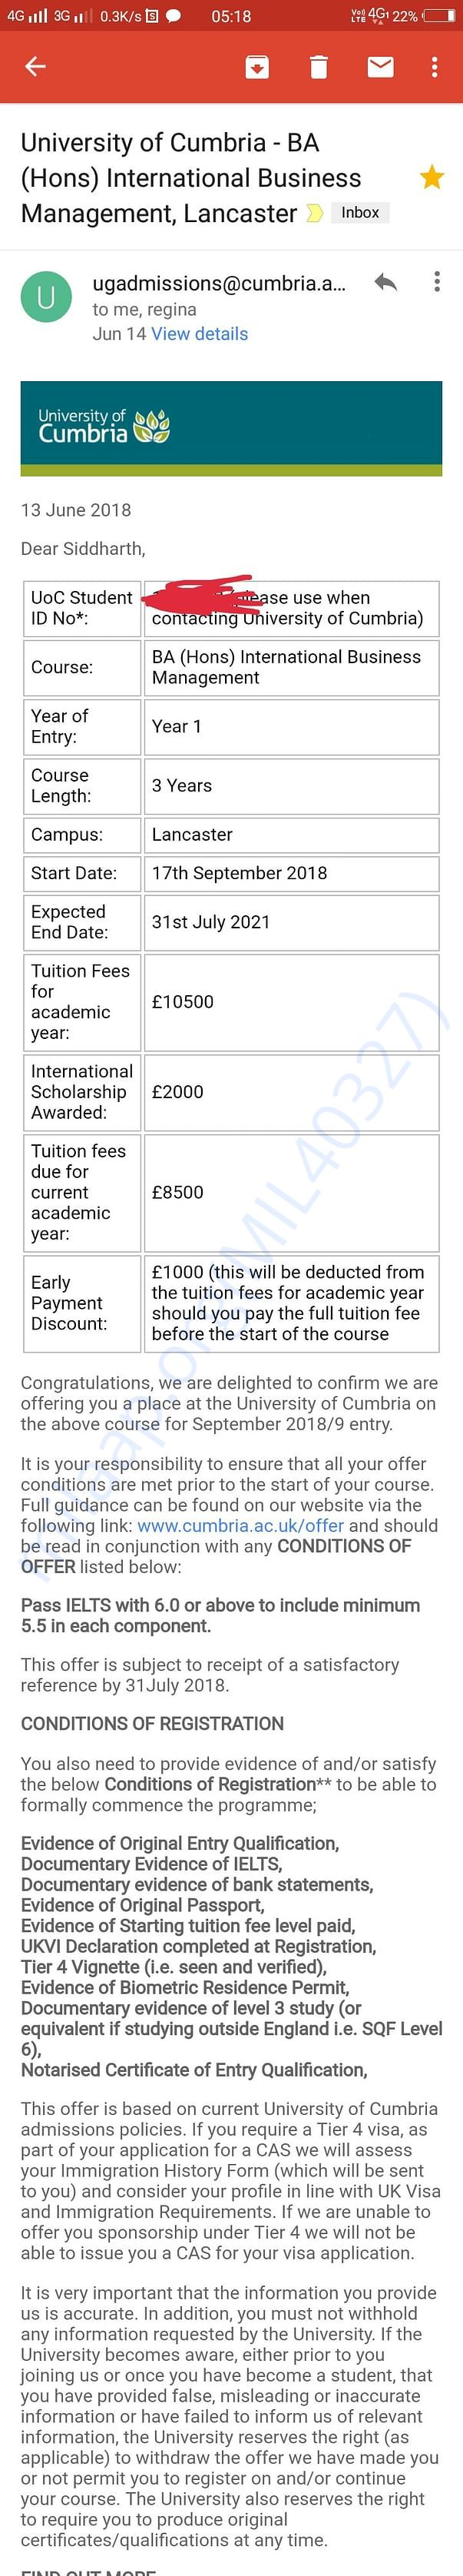 This is the screenshot of letter of offer from University